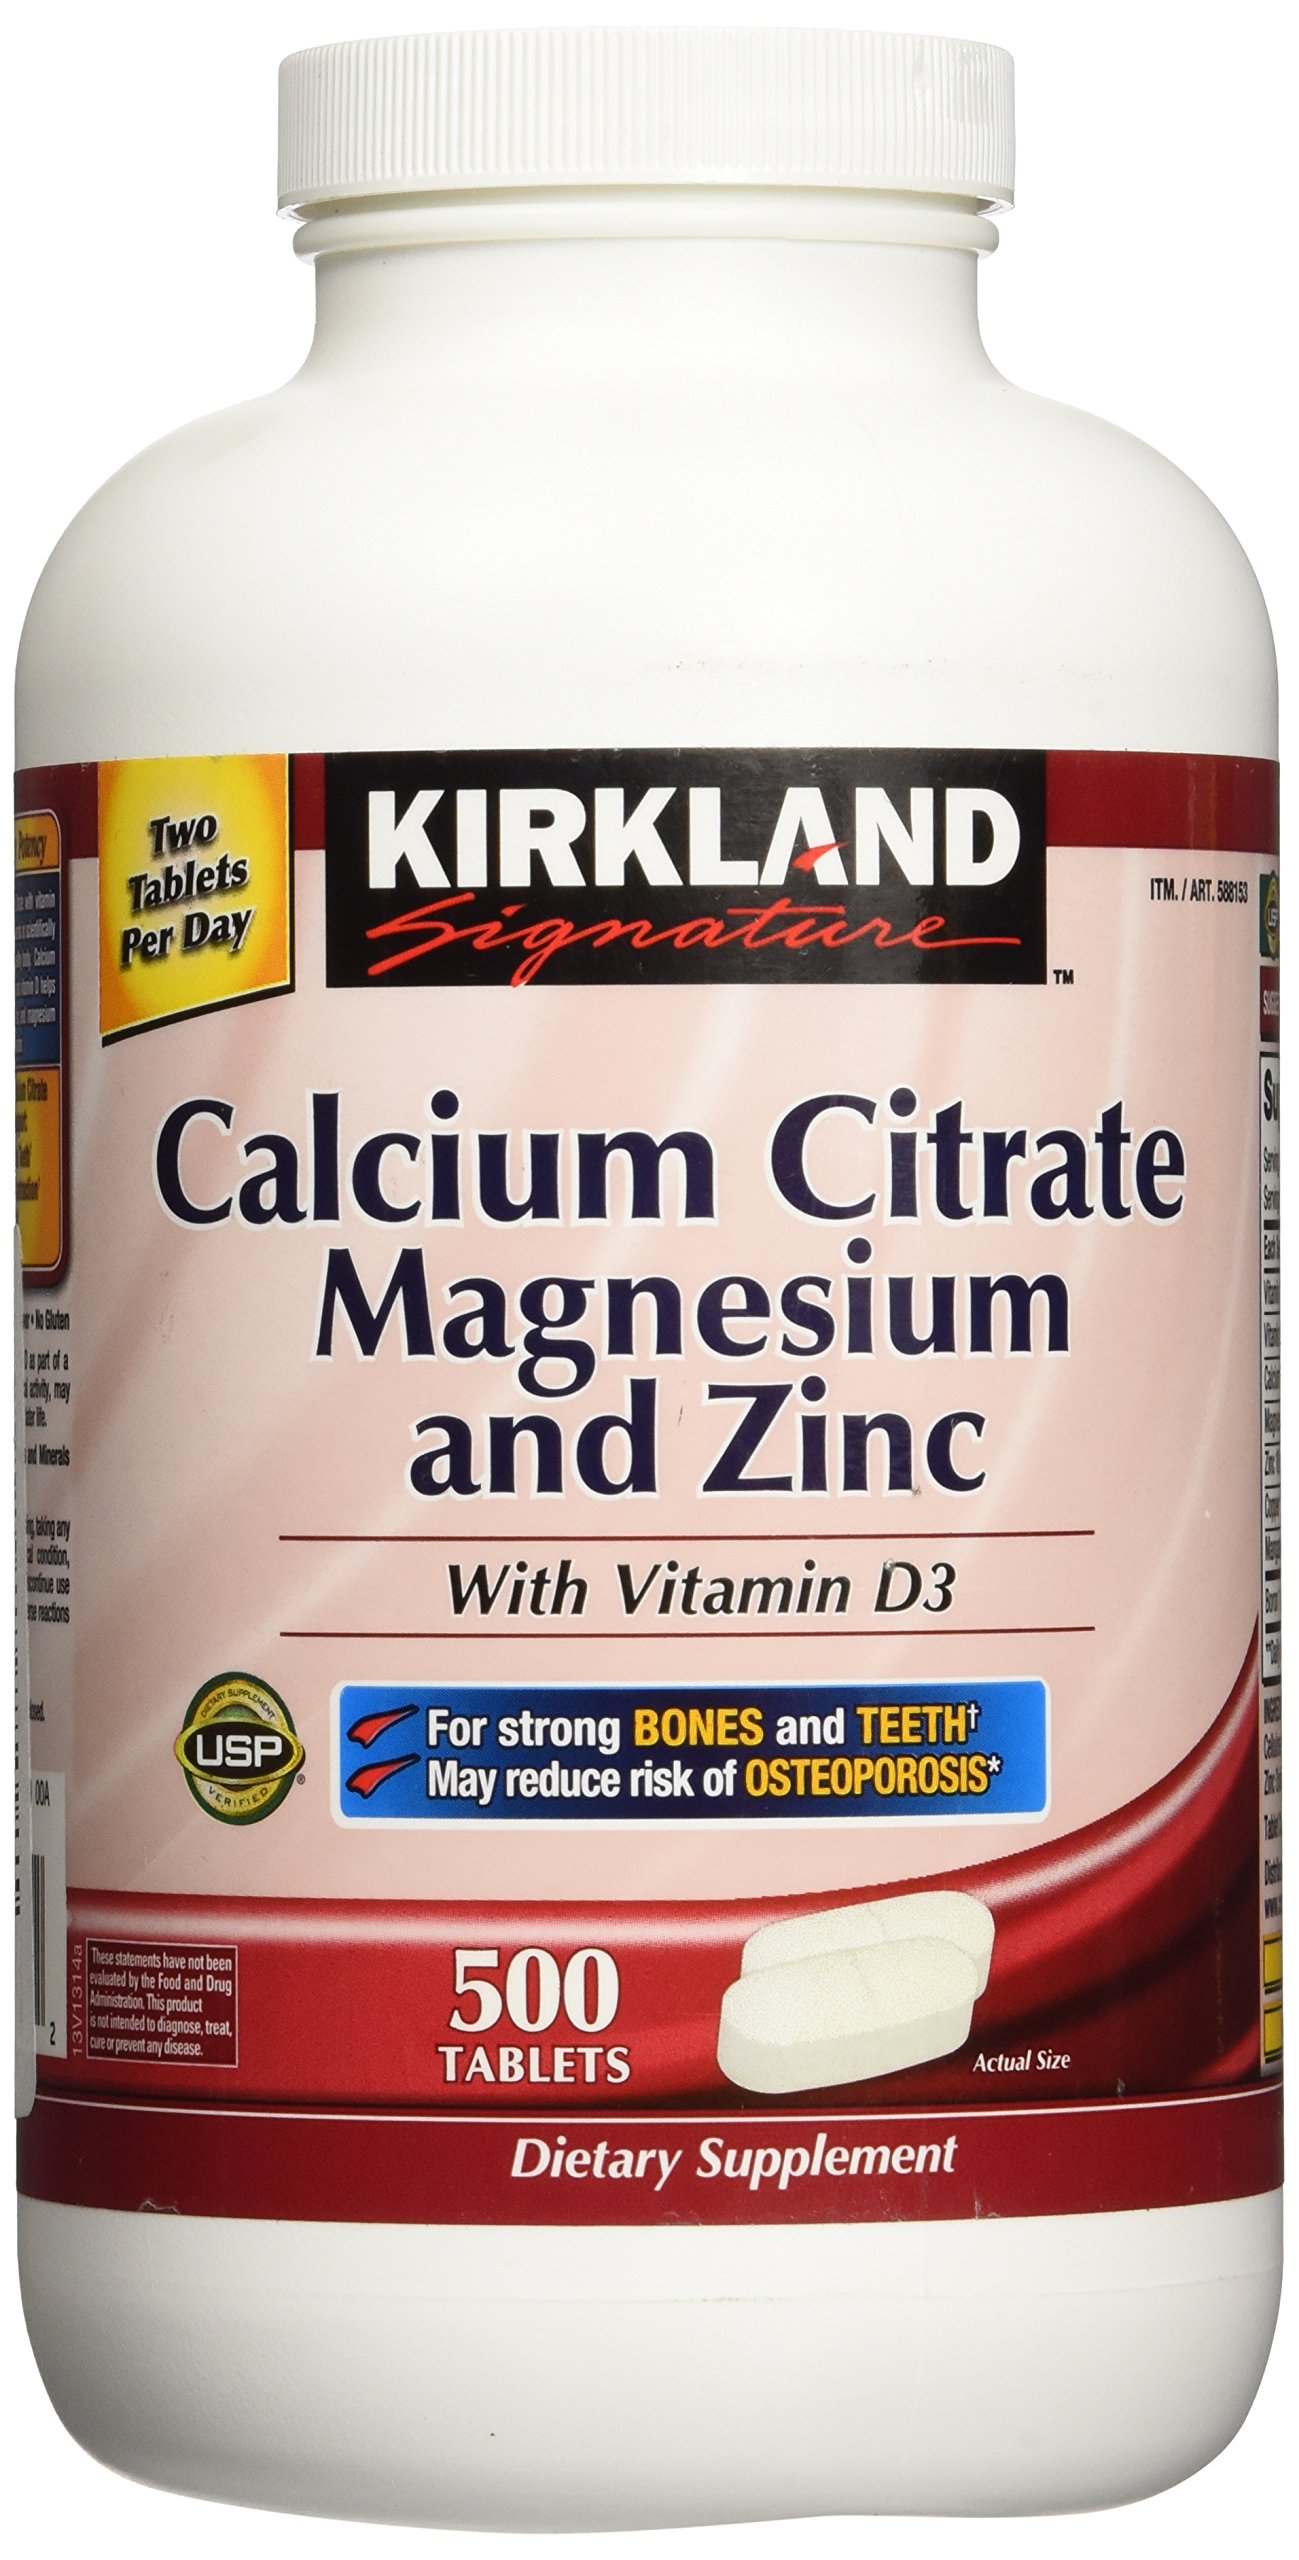 kirkland calcium signature citrate vitamin 500mg tablets amazon mg glucosamine bottle strength chondroitin d3 sulfate extra 1200mg supplement magnesium supplements